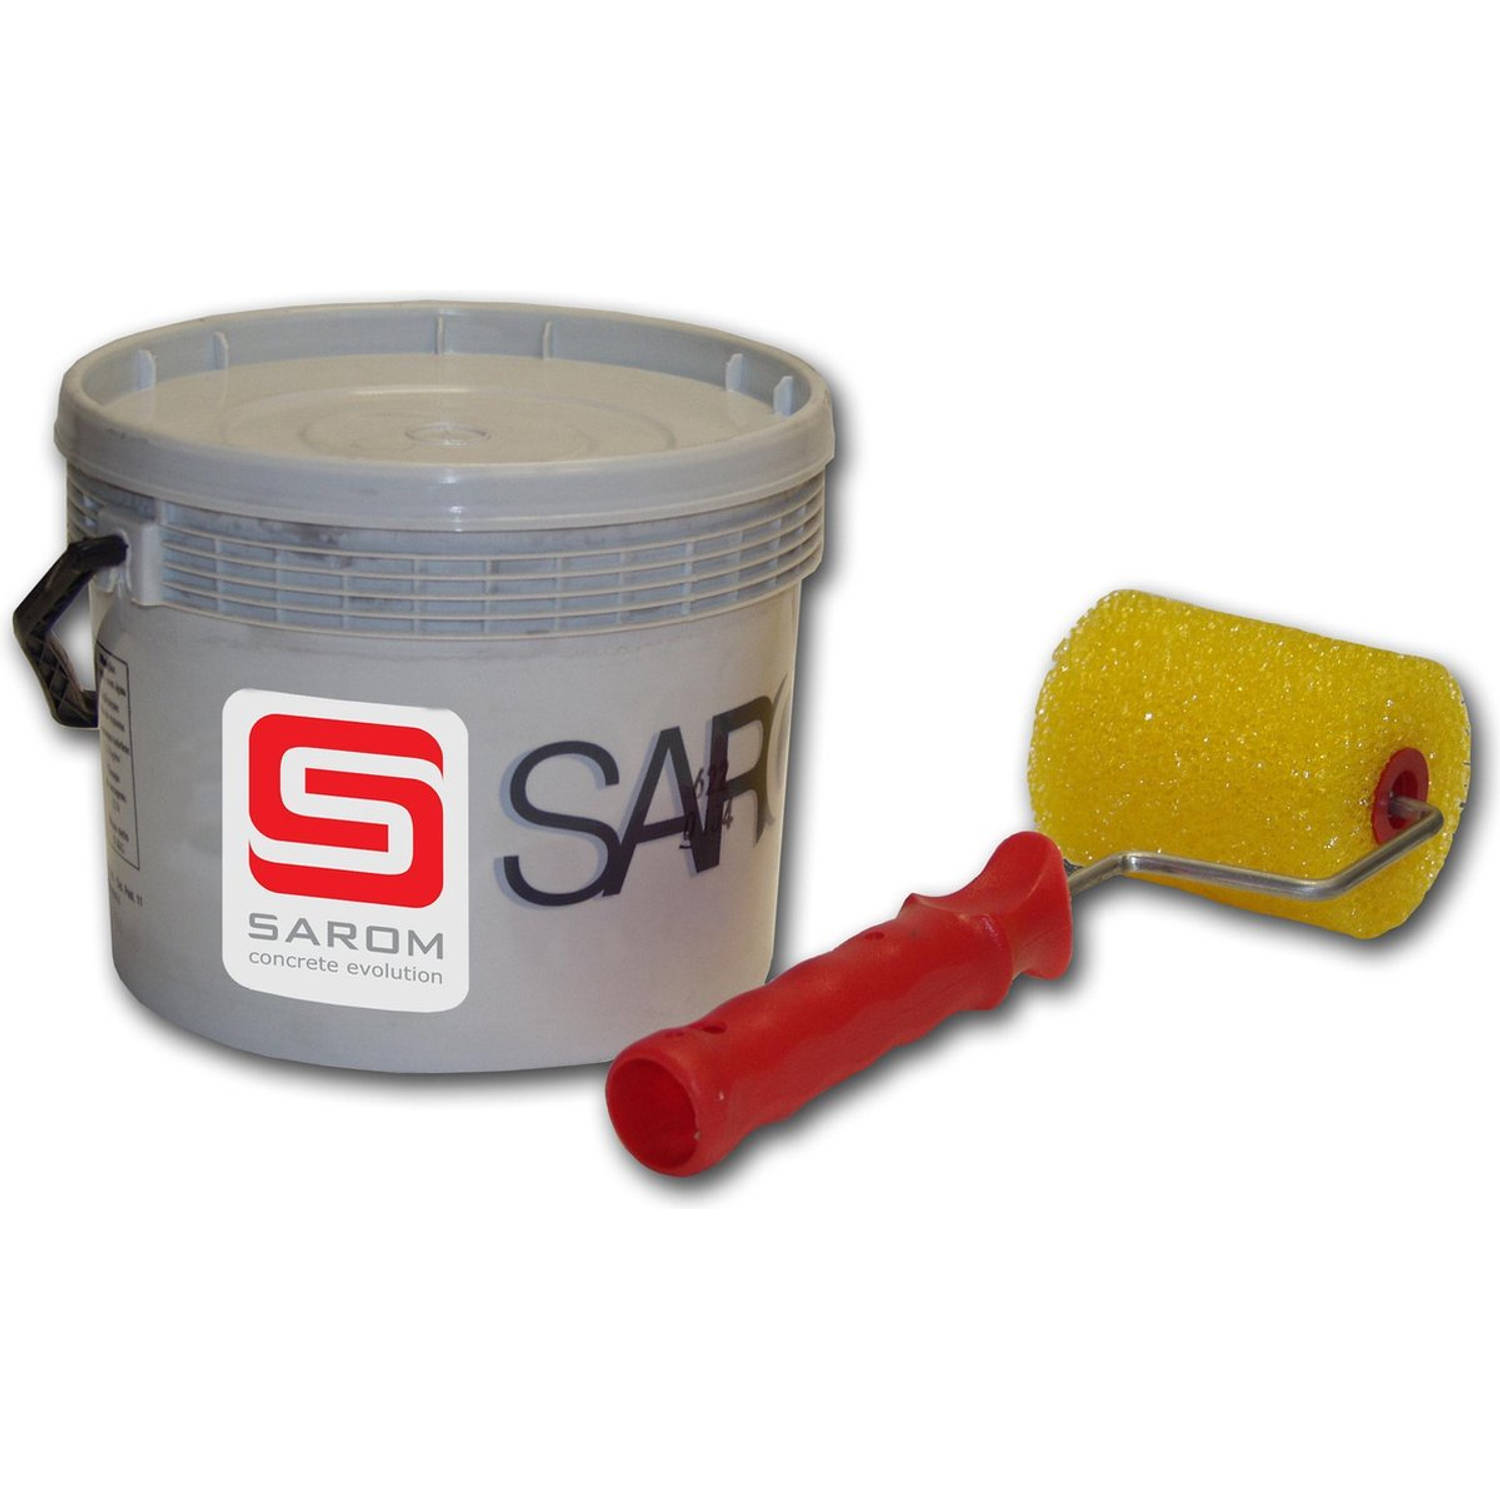 Sarom Fuoco - Barbecueverf - Betonnen Barbecue - 10l - Wit - Roller